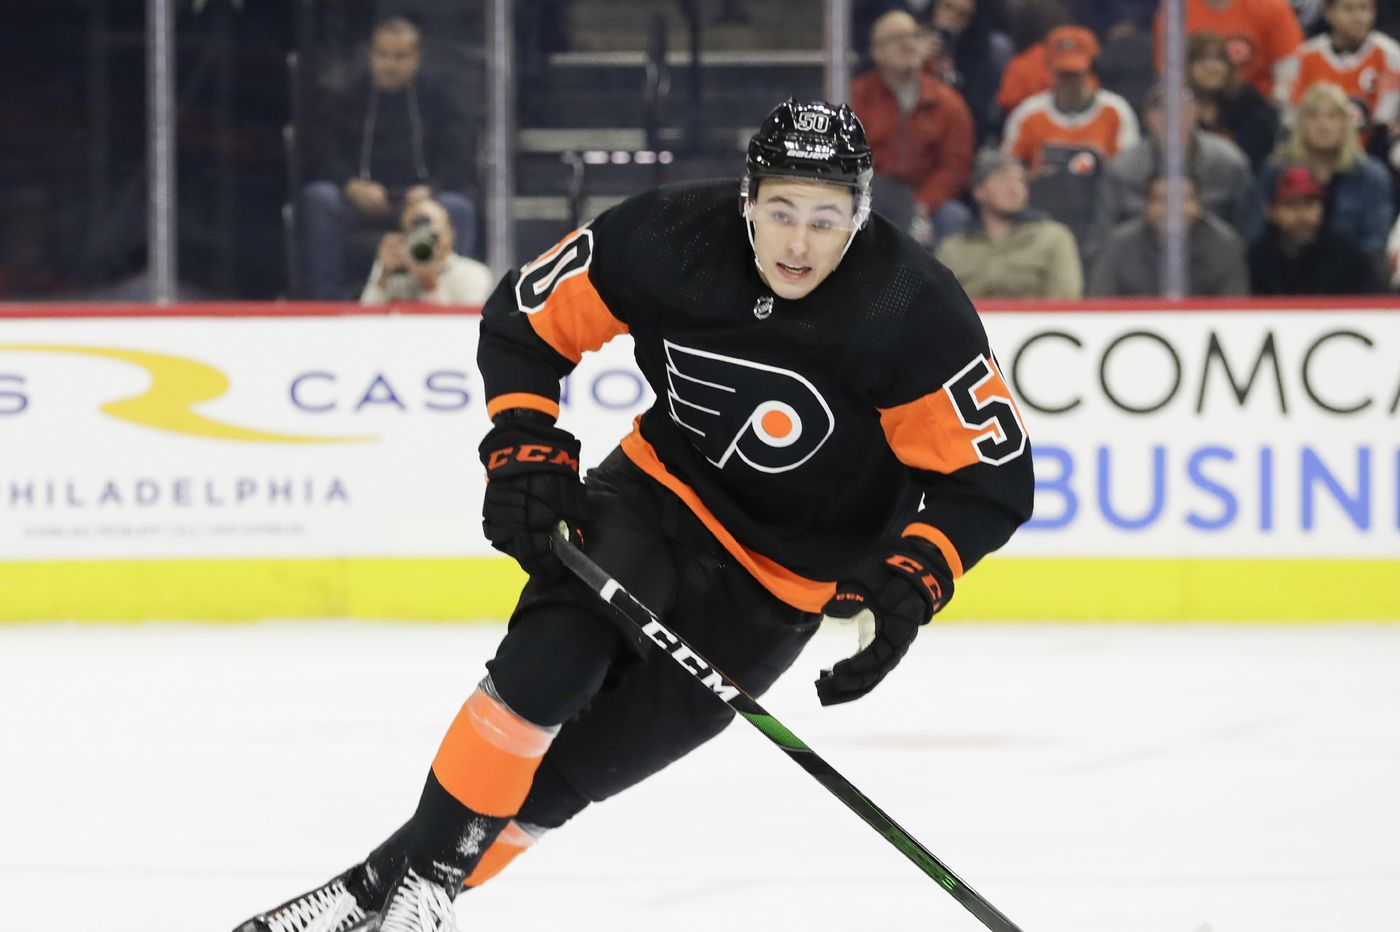 Flyers prospect continues to lead Ohio State; German Rubtsov in lineup vs. Penguins